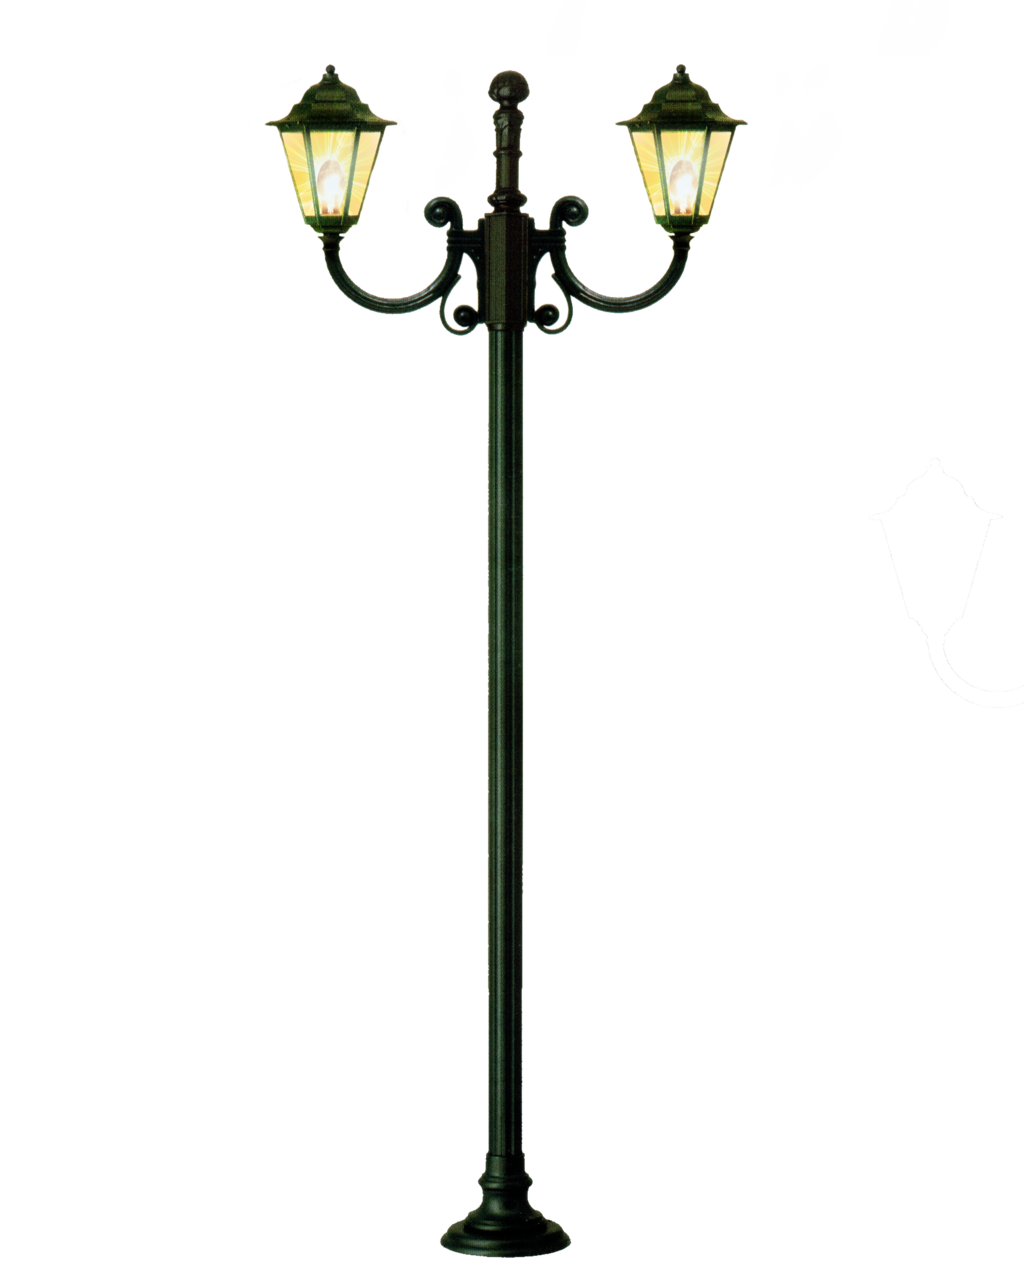 Street Light Png Image With Transparent Background Street Light Photoshop Lighting Lamp